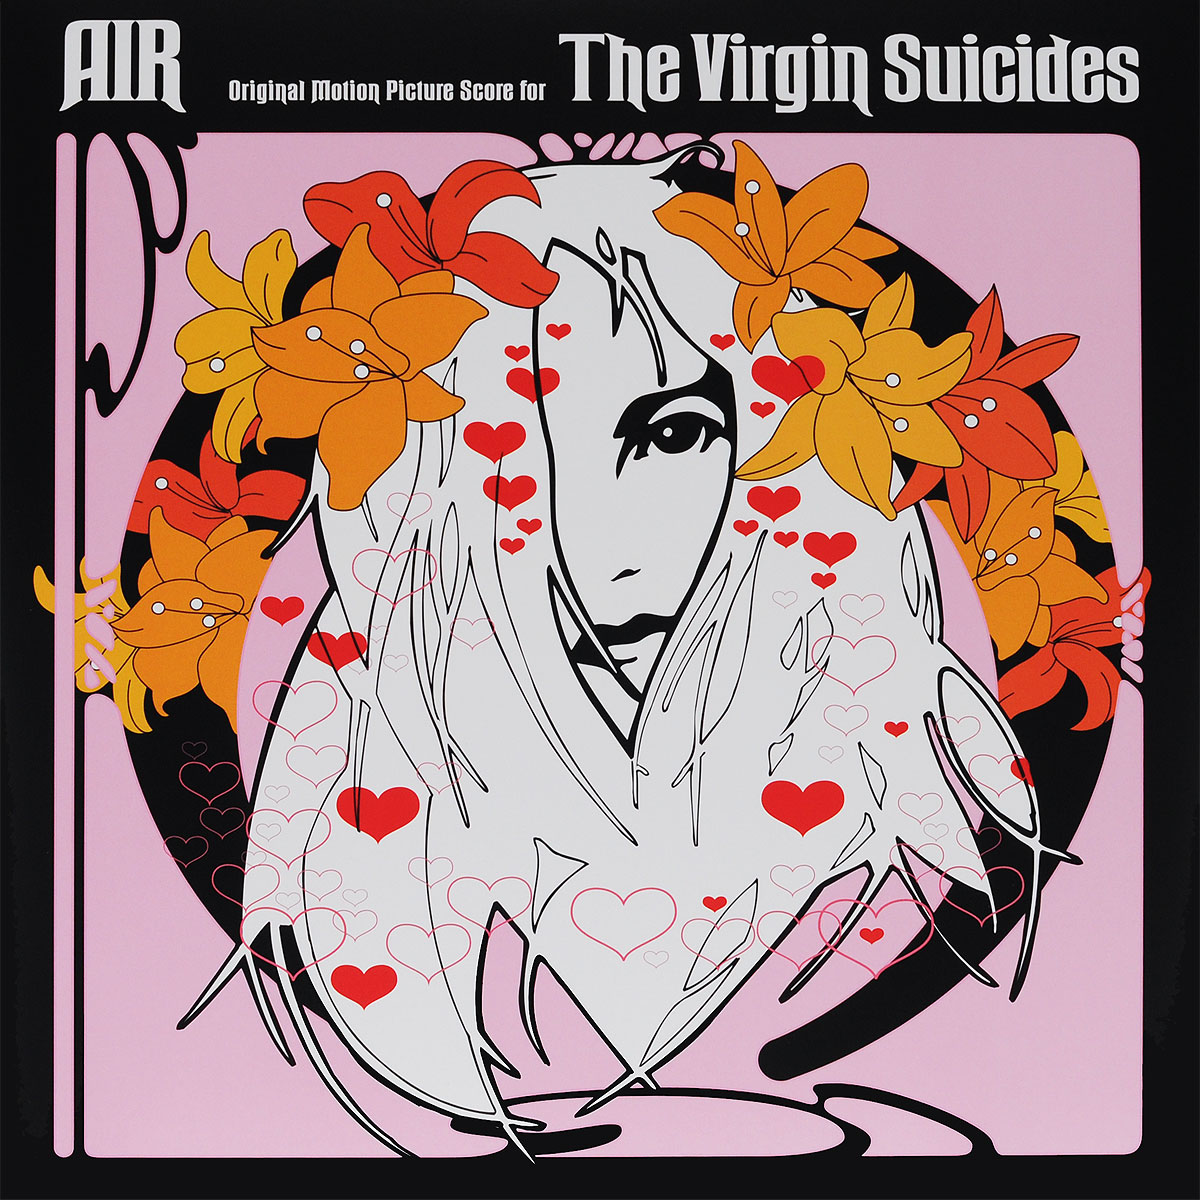 Air Air. The Virgin Suicides. Original Motion Picture Score (LP) air air premiers symptomes lp